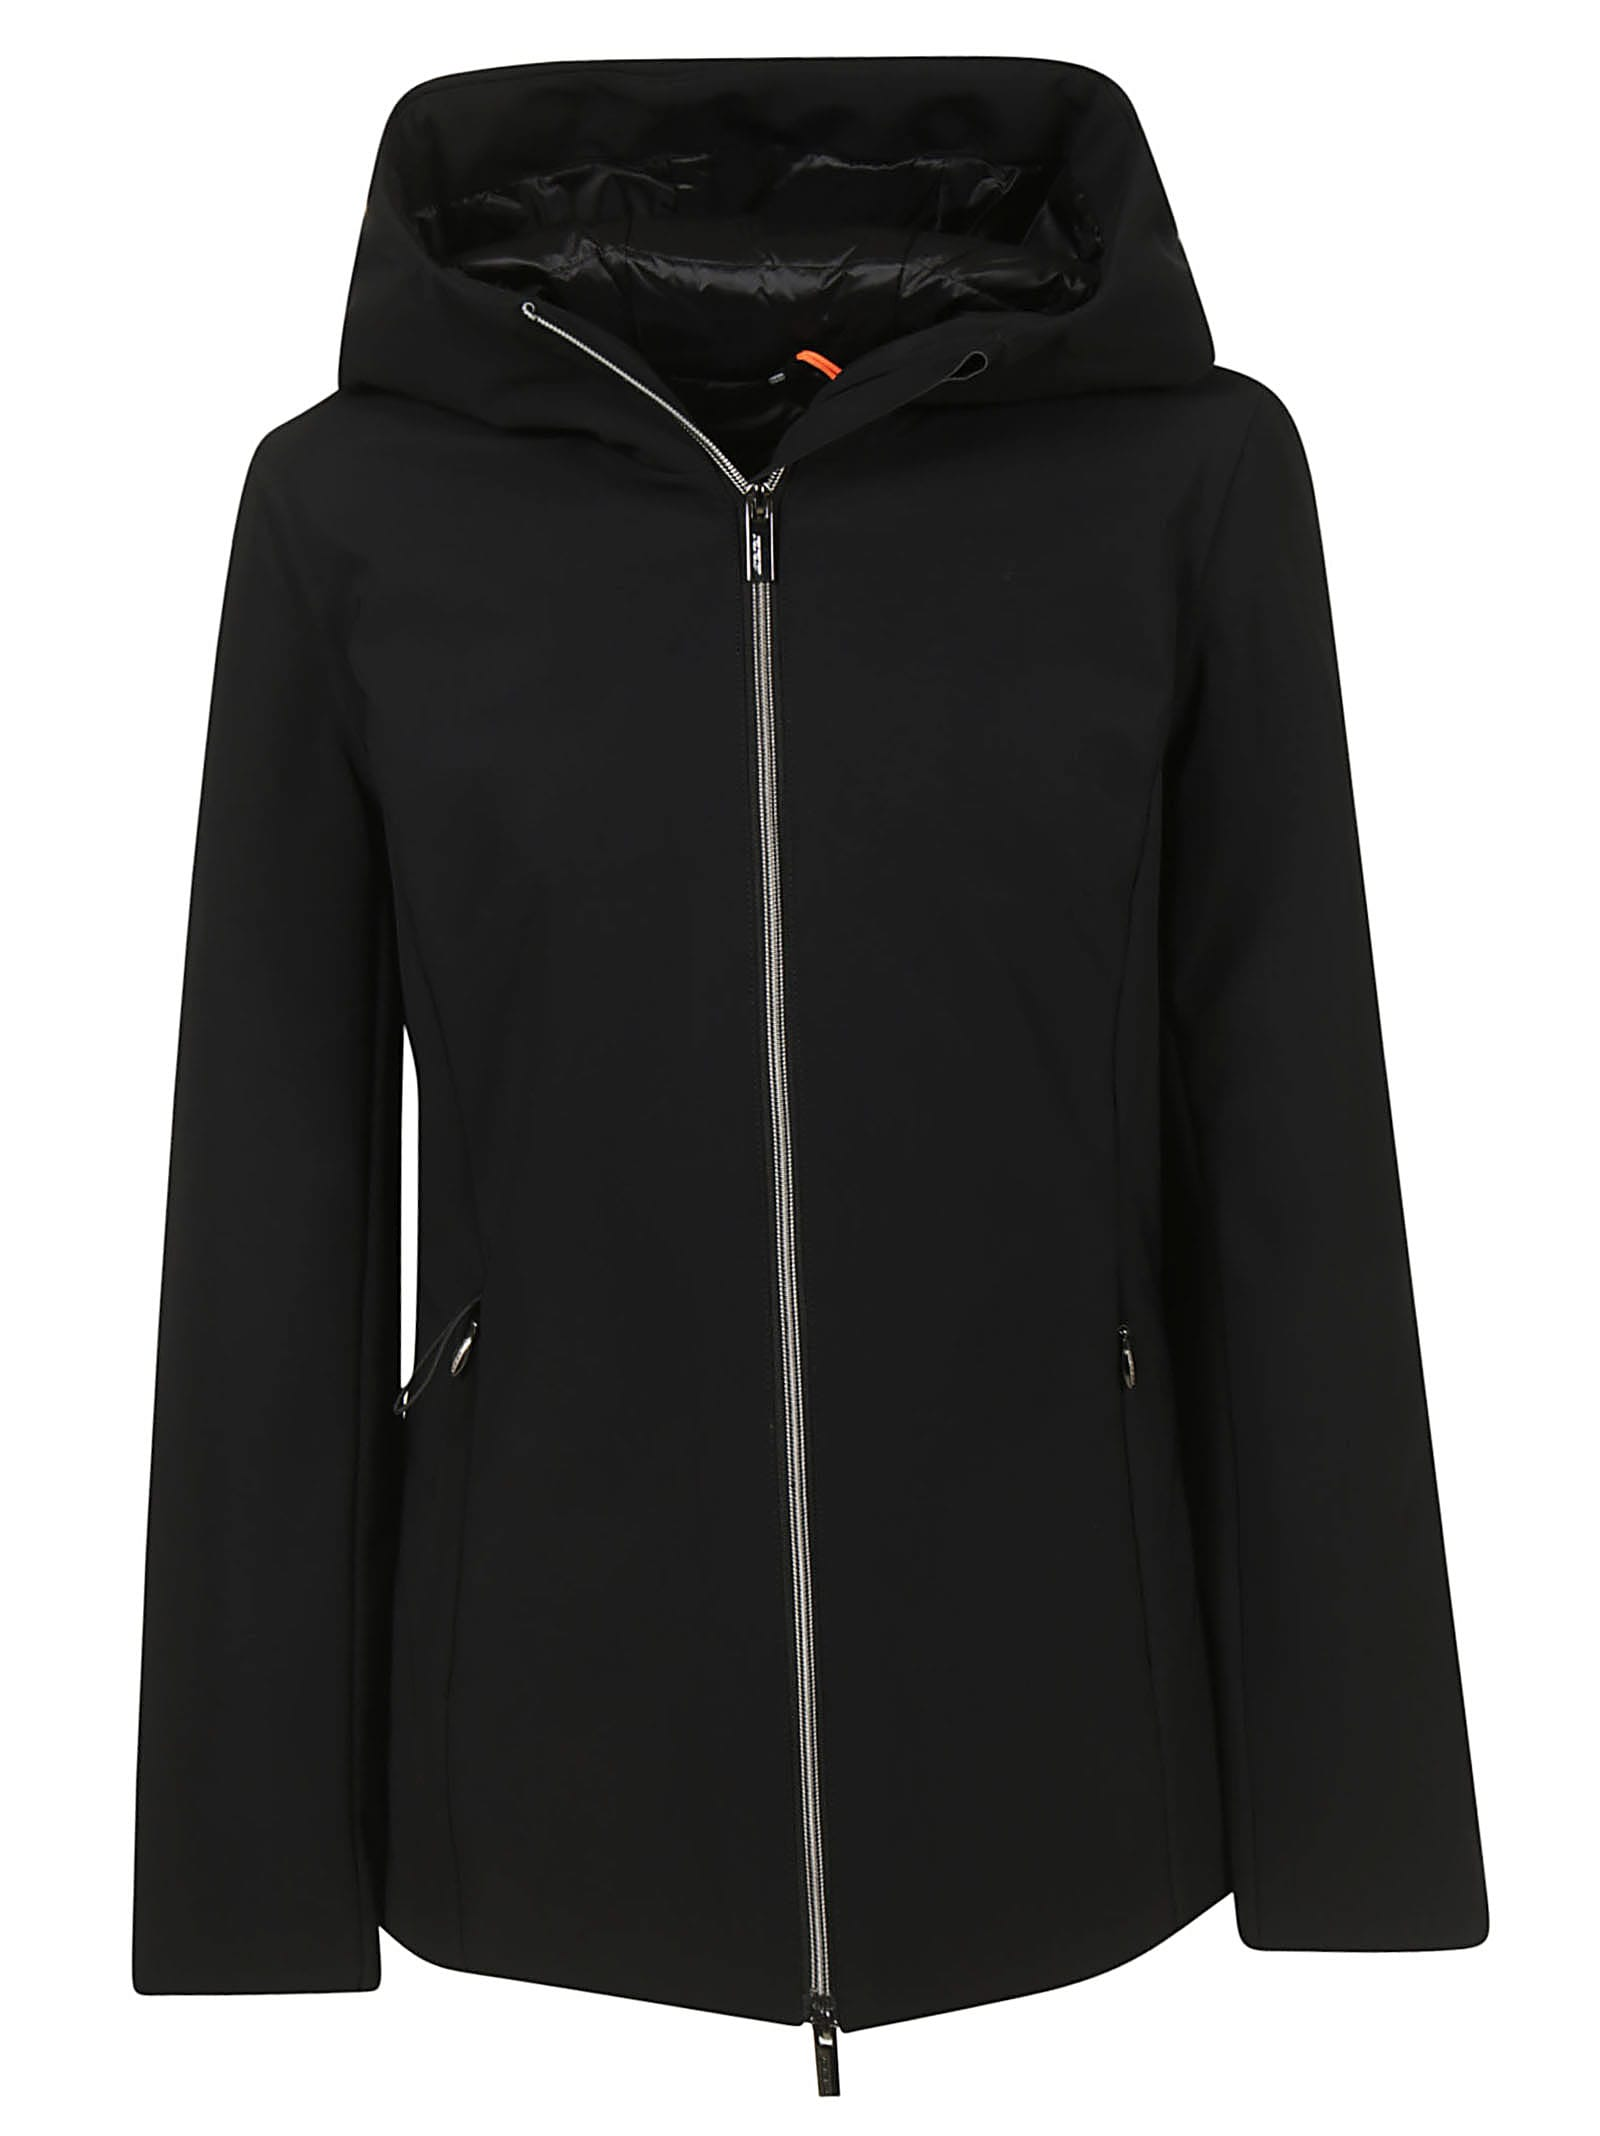 RRD - Roberto Ricci Design Zipped-up Jacket